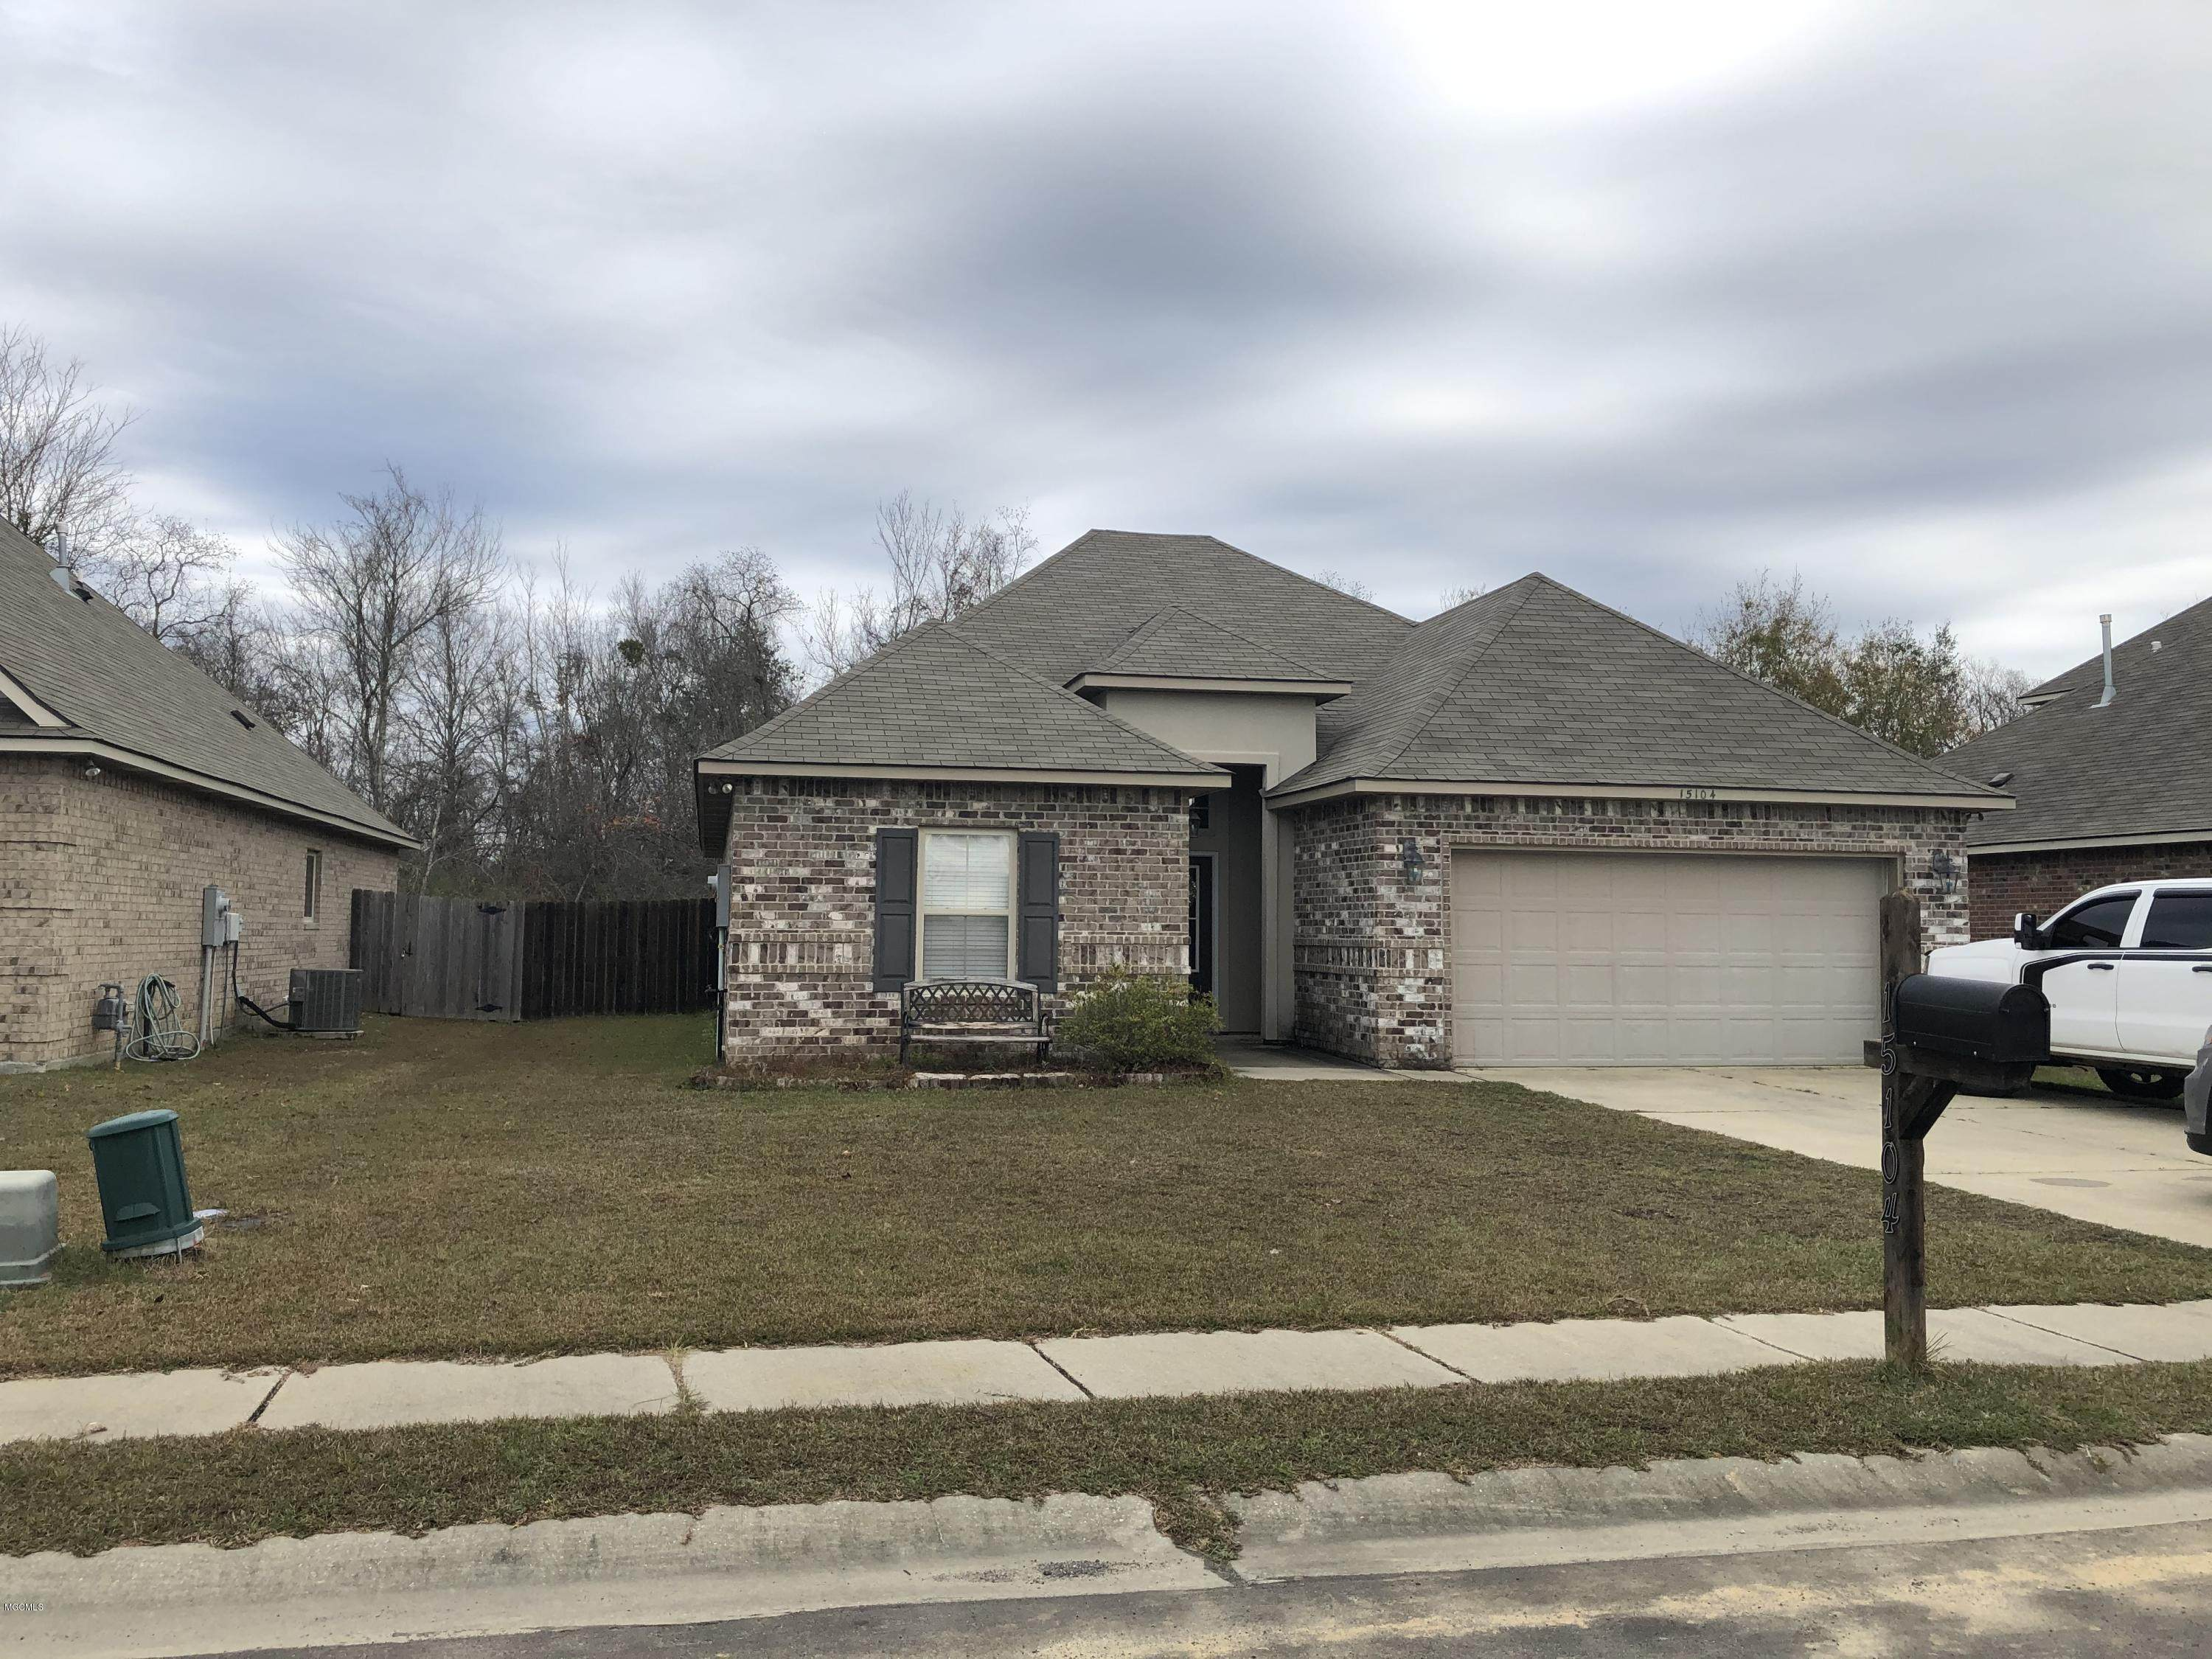 15104 N Ranier Ave, Gulfport, MS 39503 (MLS #356381) :: Coastal Realty Group